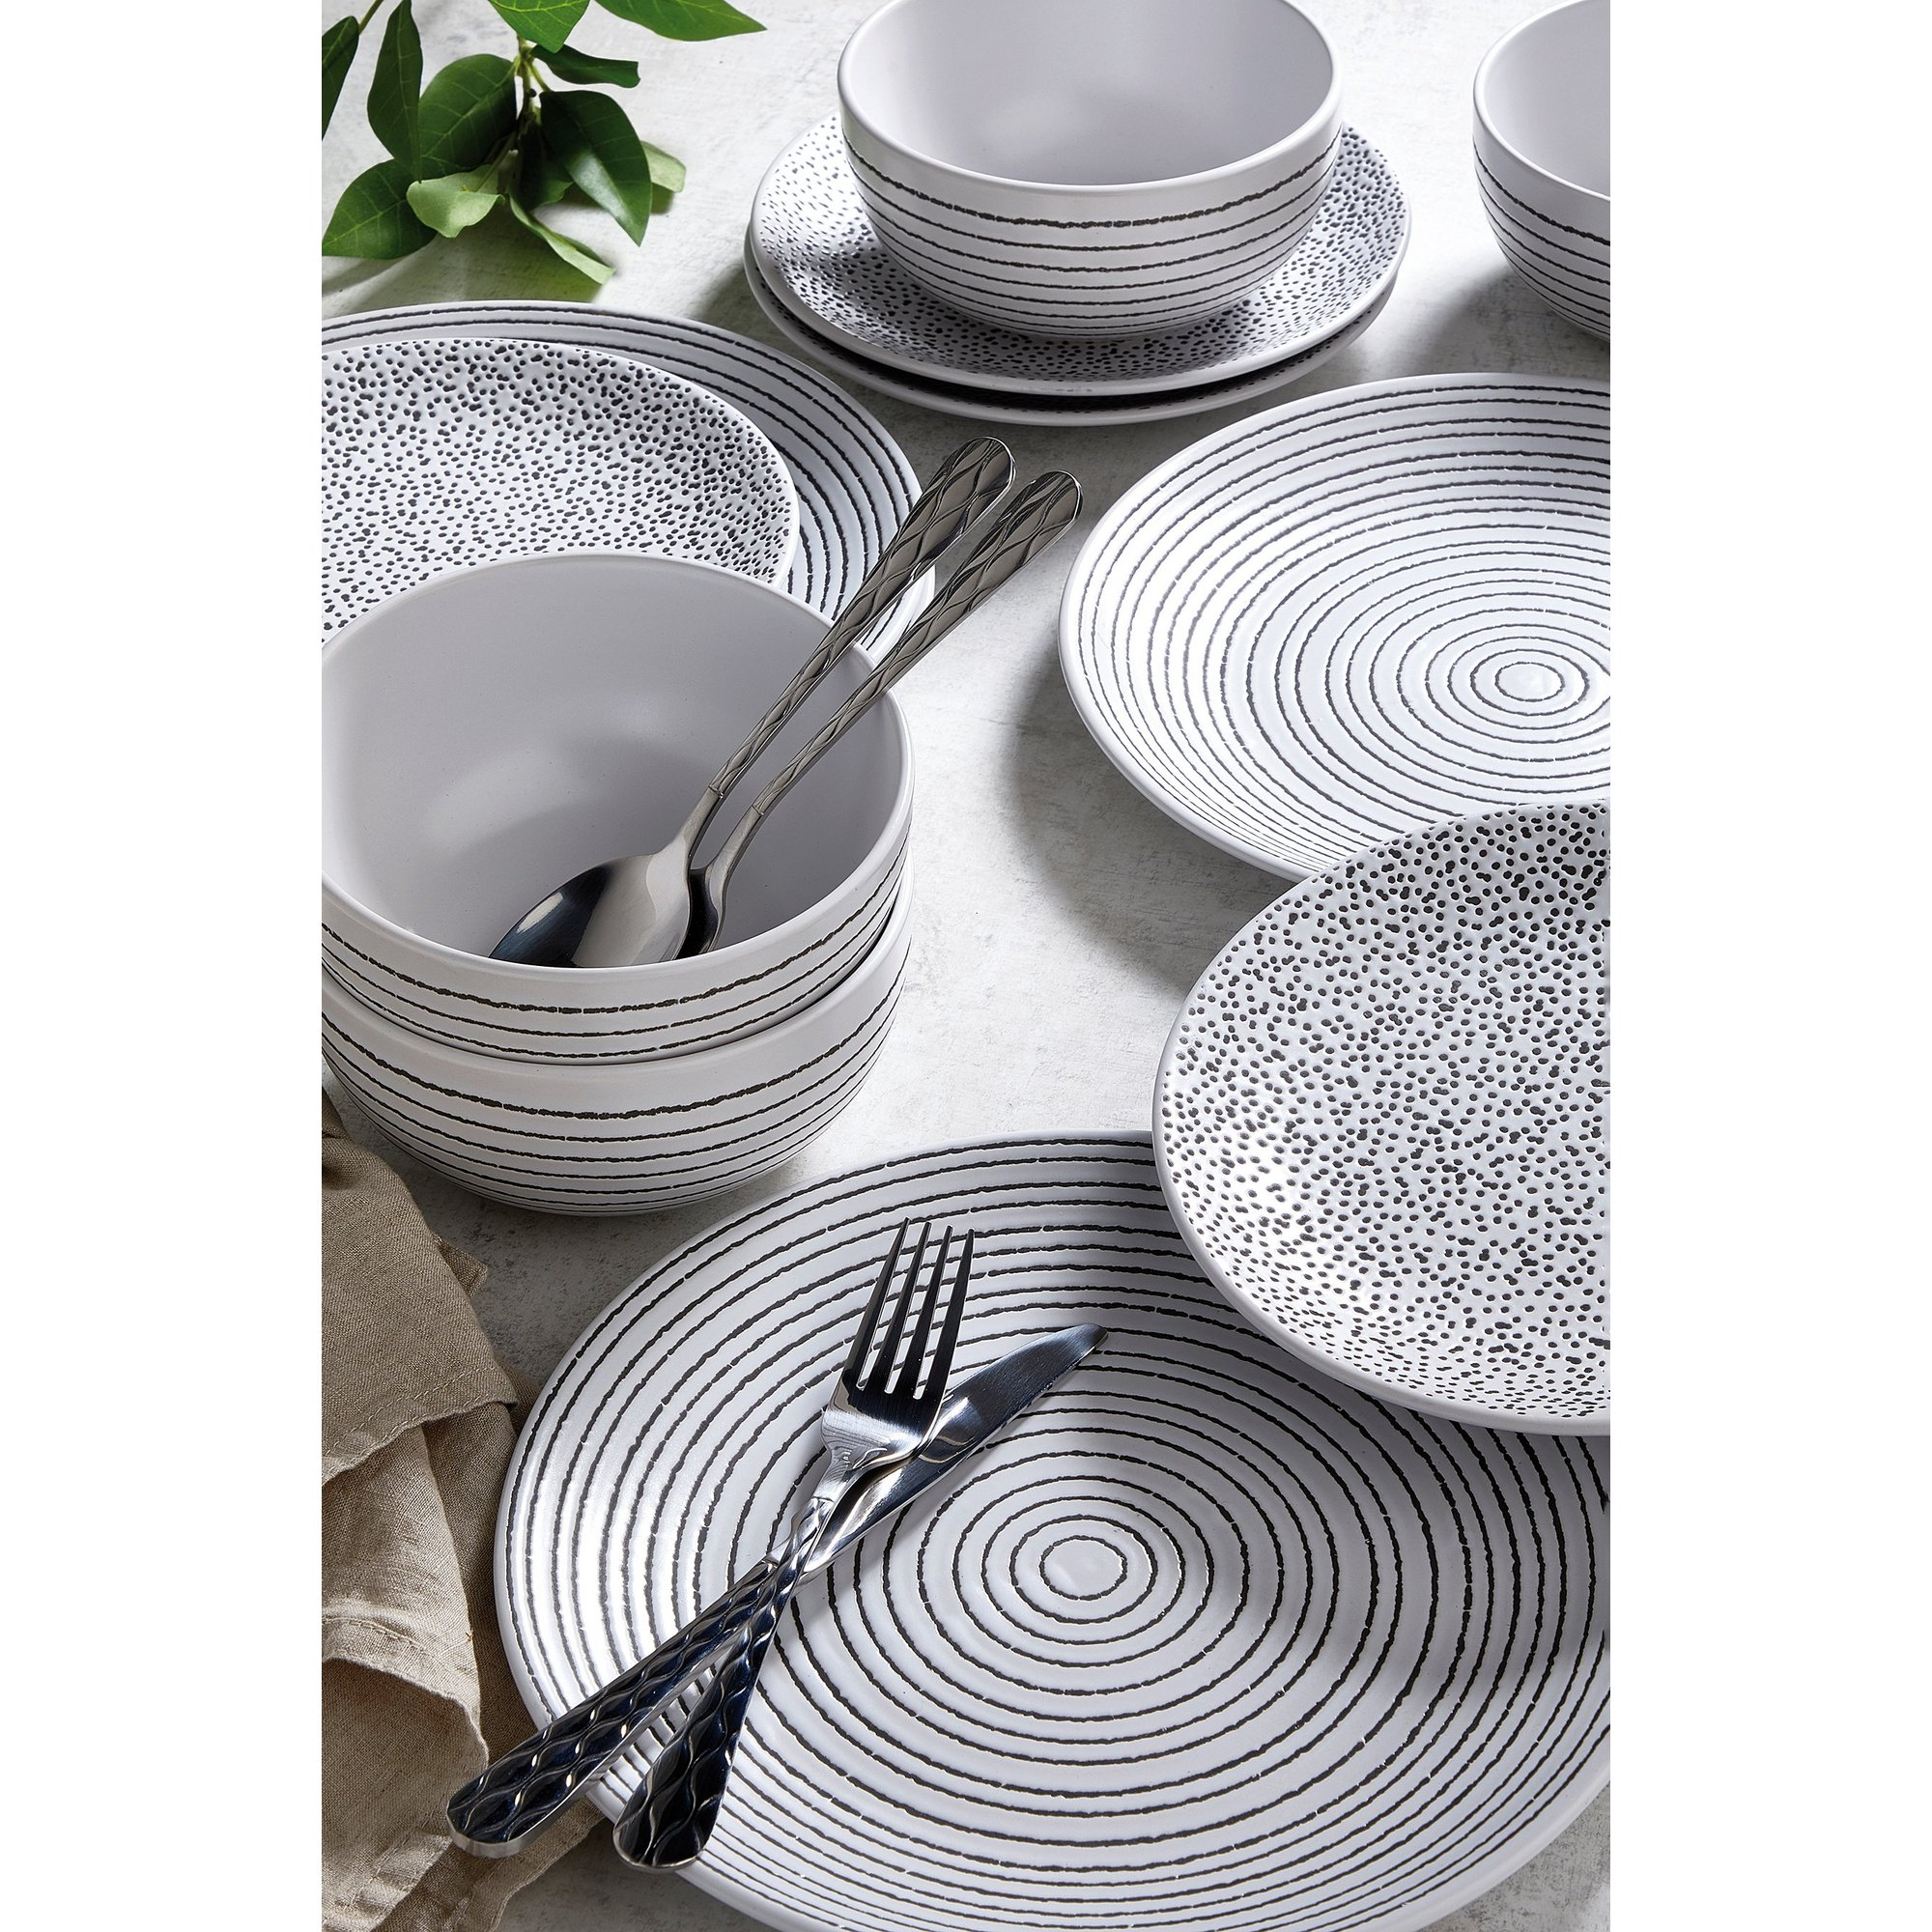 Image of 12 Piece Pad Print Mix and Match Dinner Set